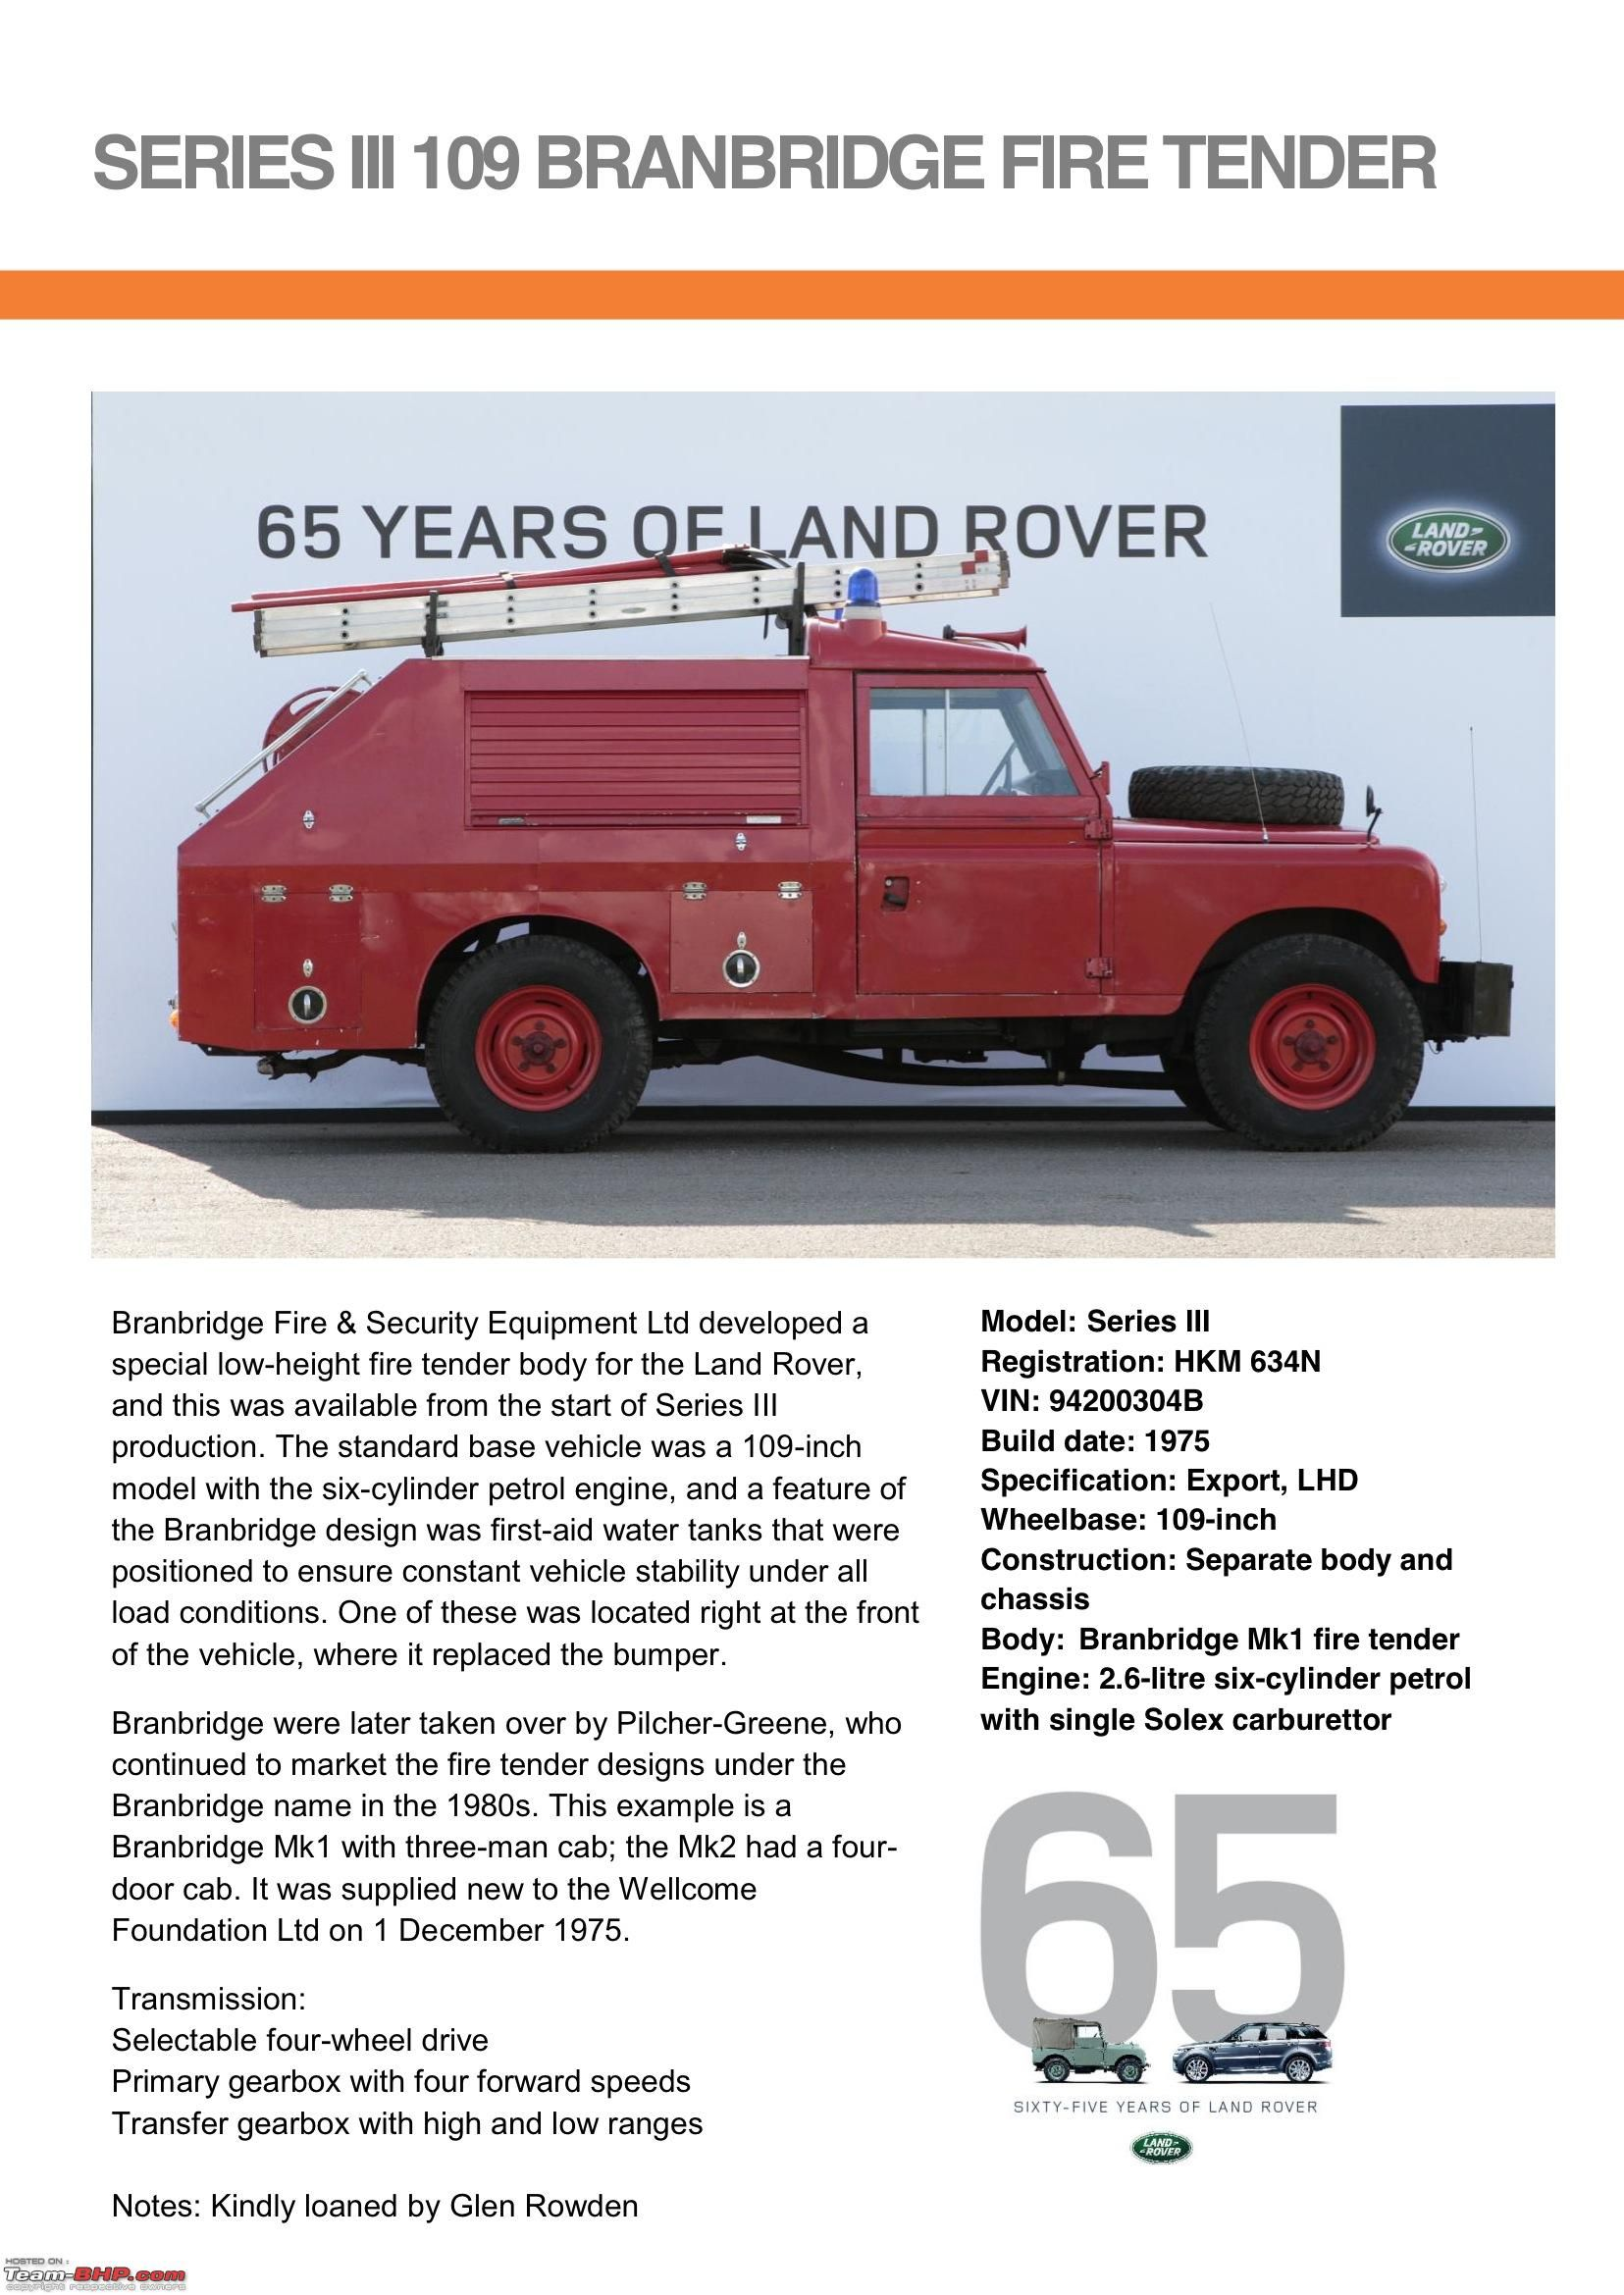 Pin By Mr1 On 65 Years Of Land Rover Pinterest 1975 Defender 90 Is A Car Brand That Specialises In Four Wheel Drive Vehicles Owned British Multinational Manufacturer Jaguar Which Has Been